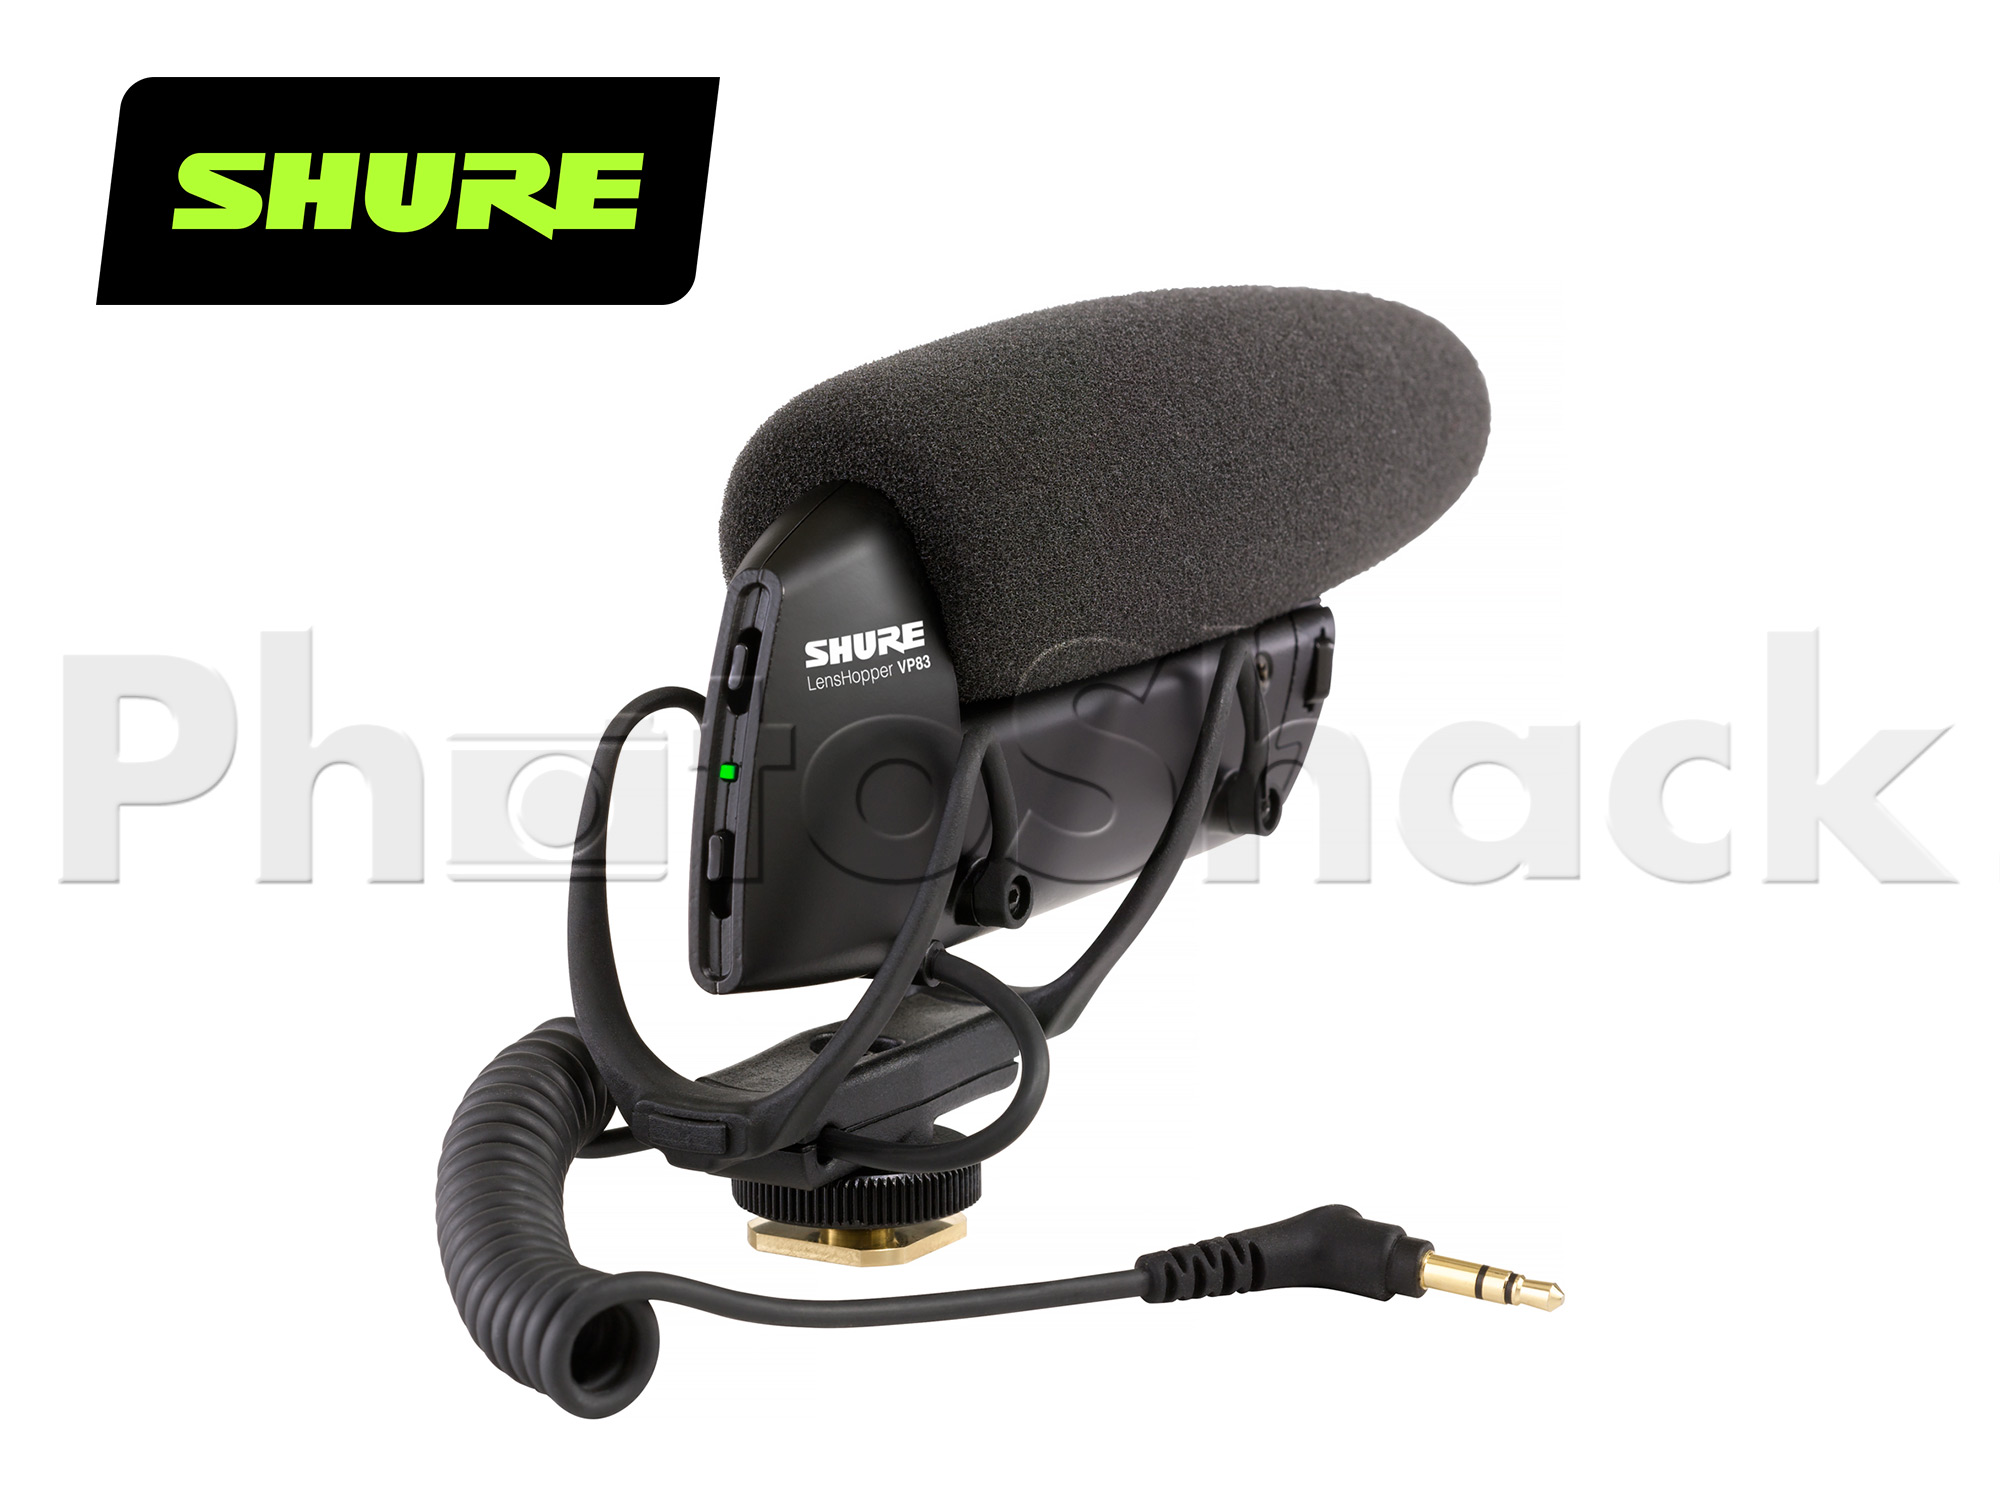 Shure VP83 Camera-Mount Condenser Microphone